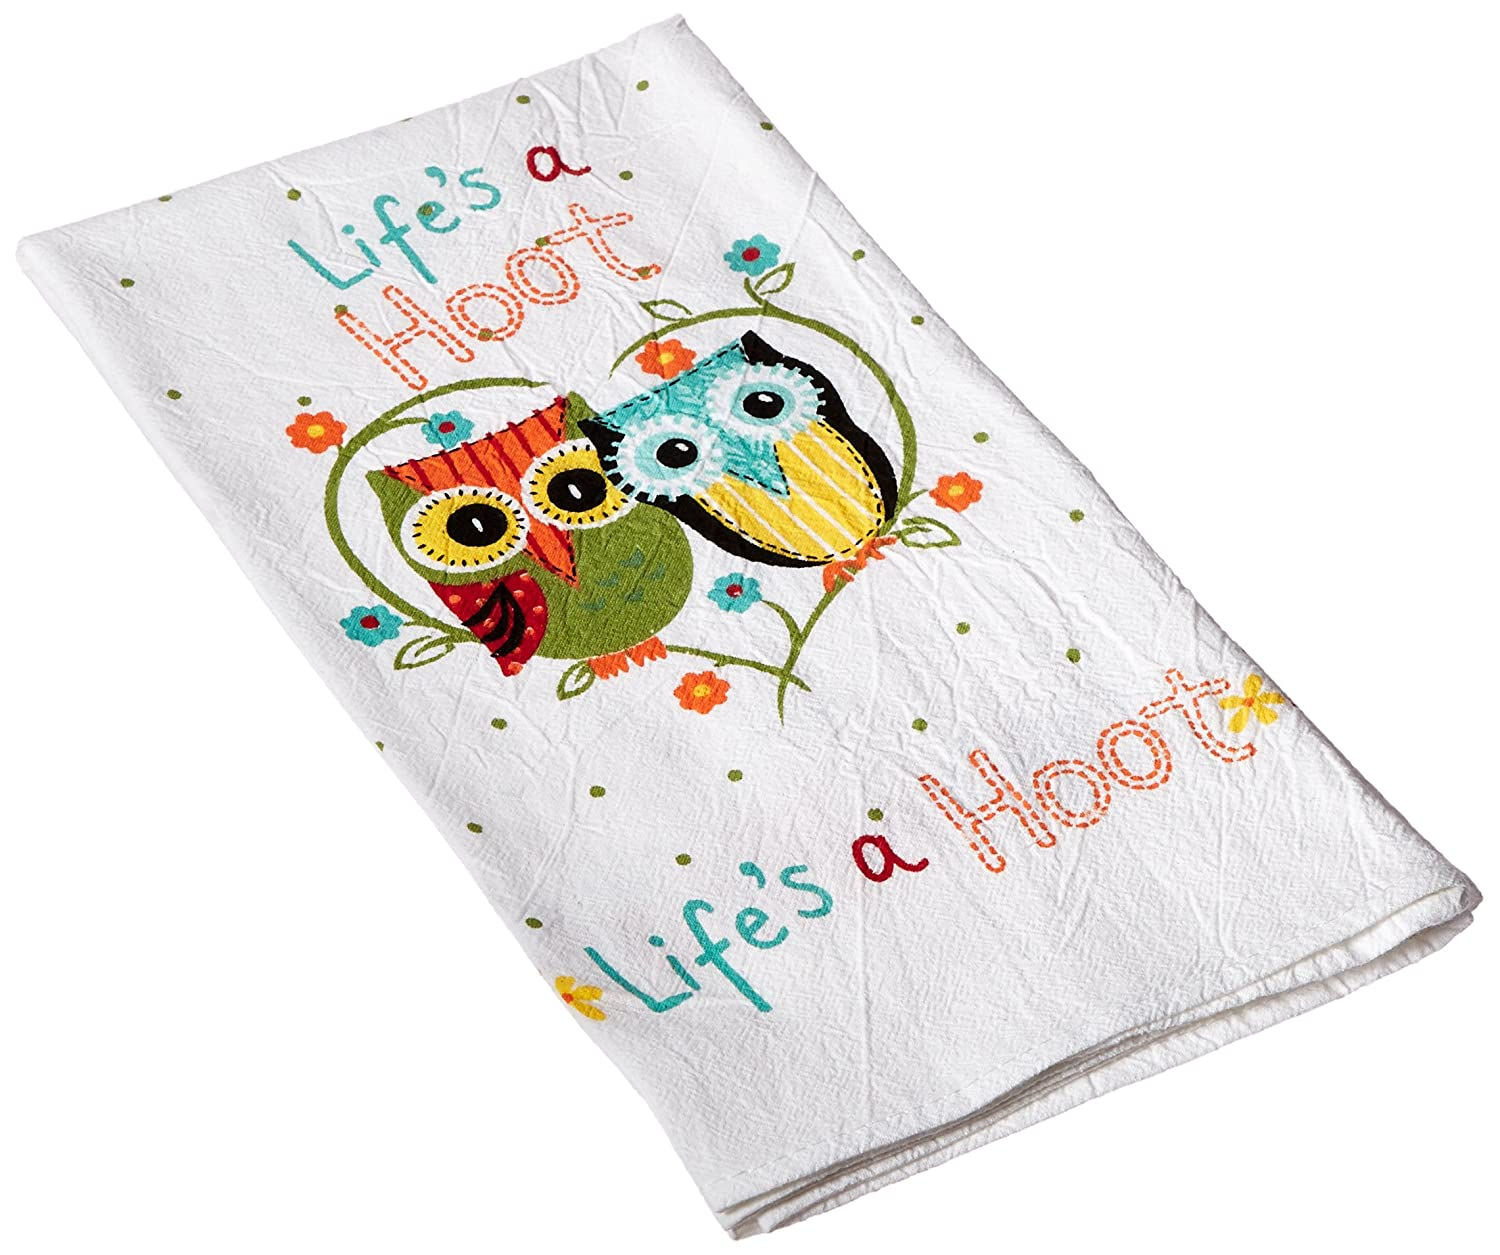 Elegant Amazon.com: Kay Dee Designs Cotton Flour Sack Towel, Lifeu0027s A Hoot: Home U0026  Kitchen